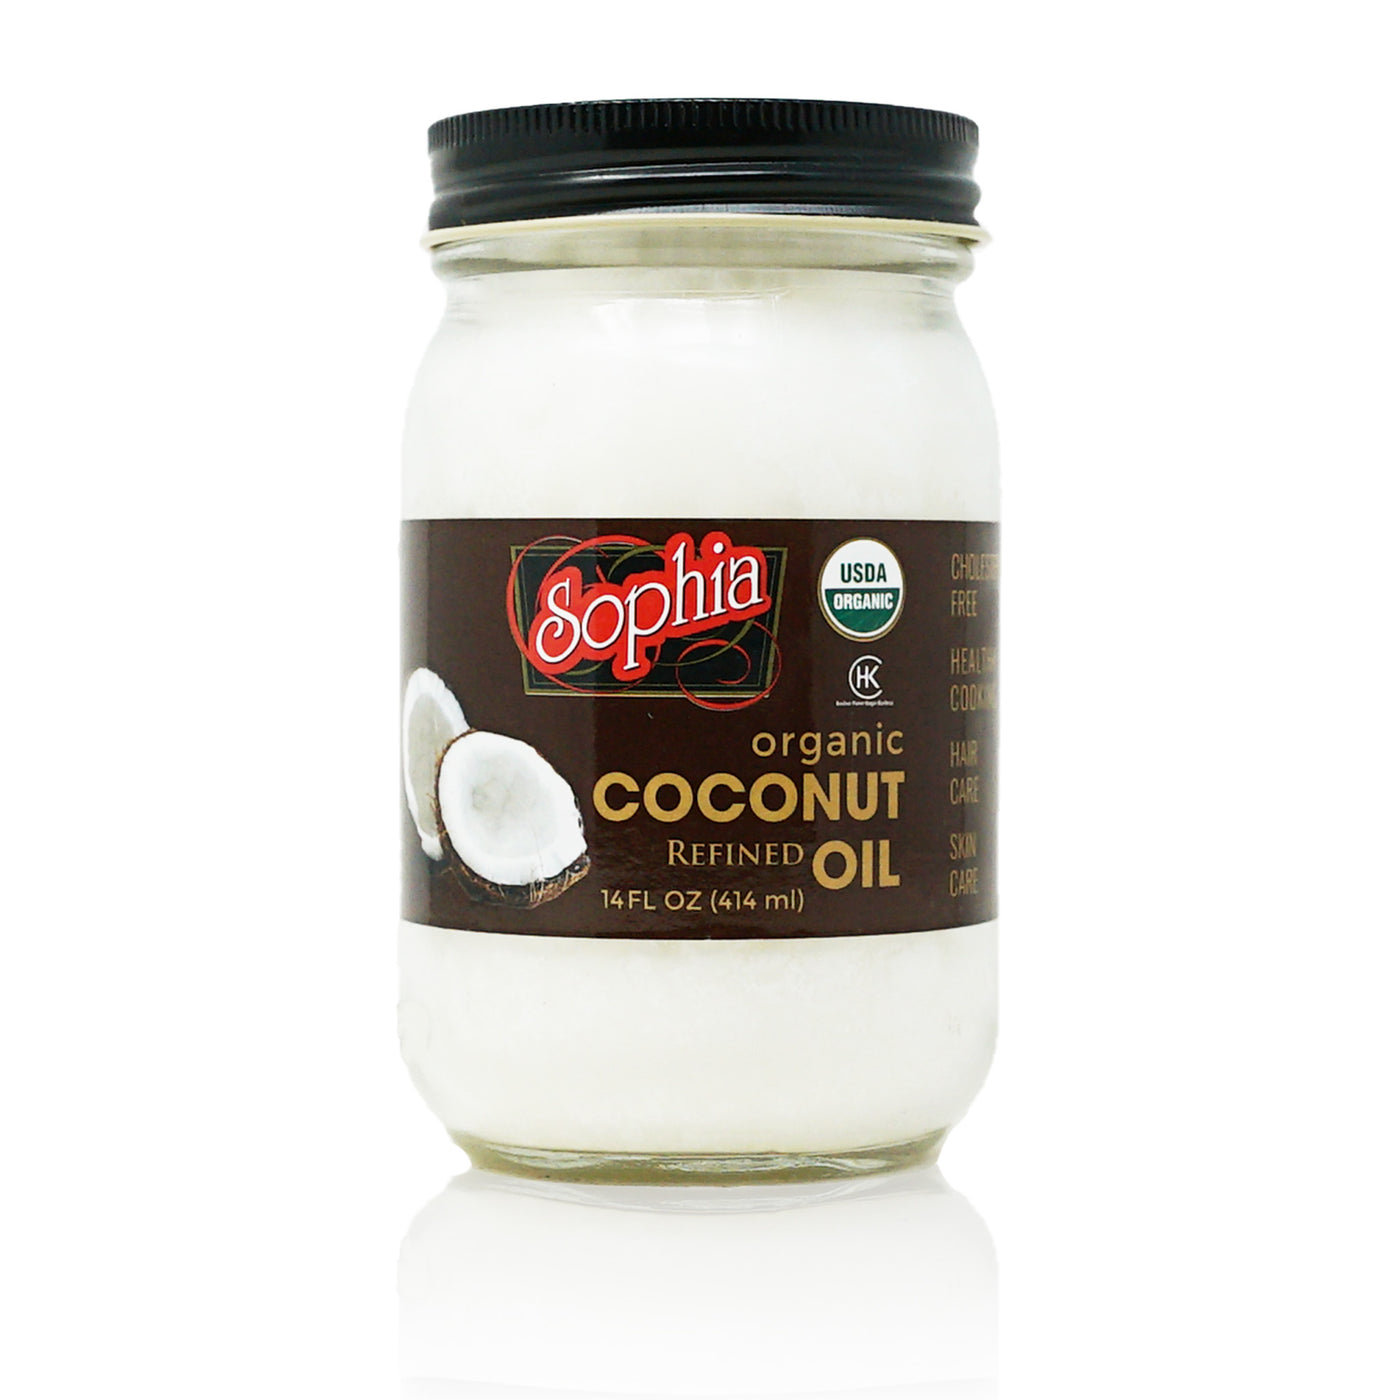 Sophia Oil - Coconut Oil, Organic & Refined